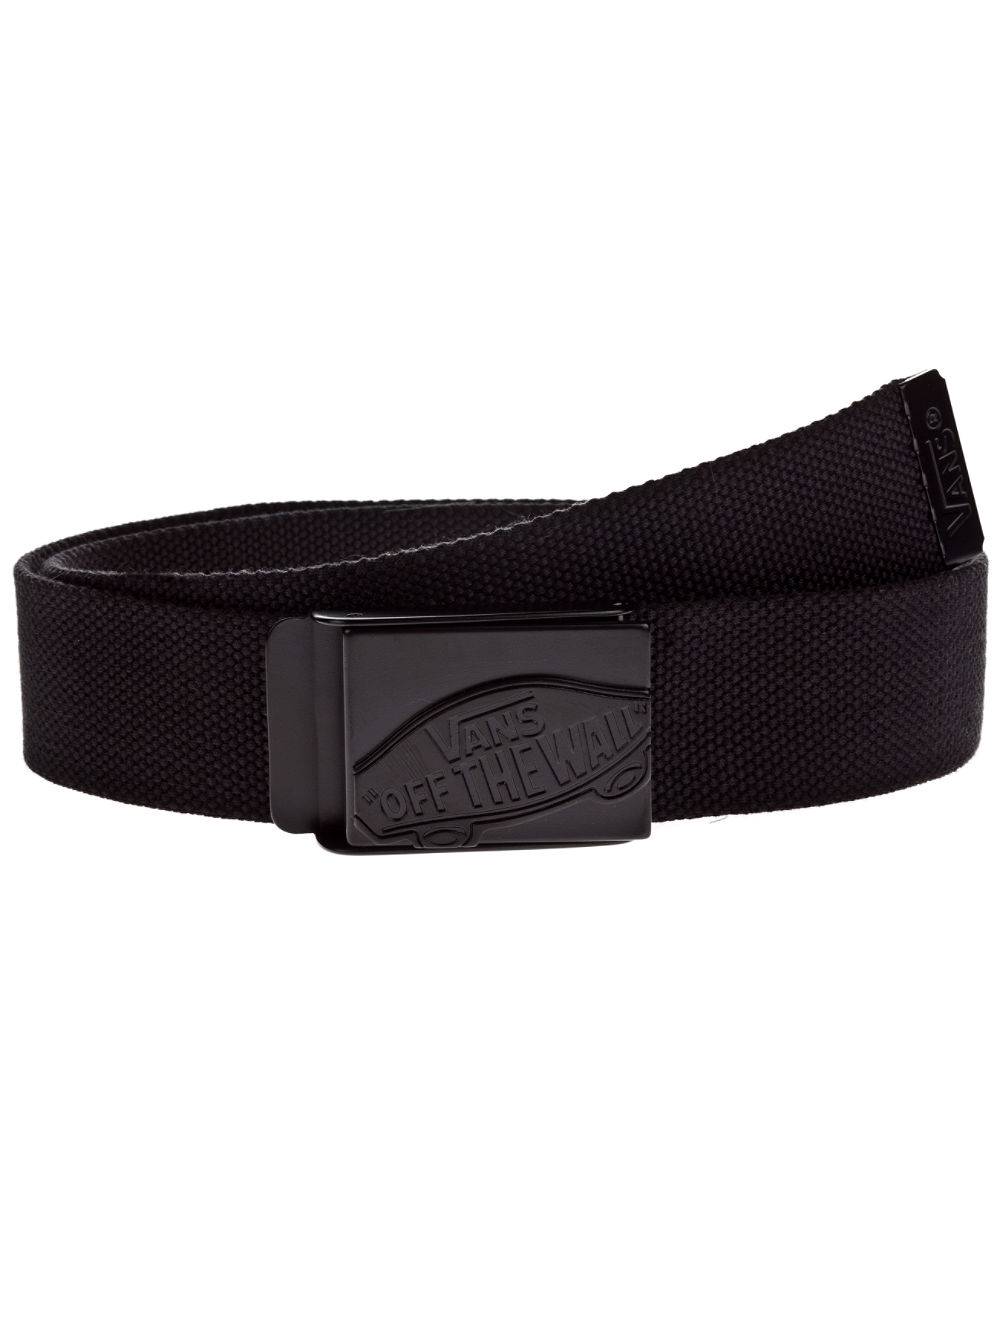 vans-conductor-web-belt